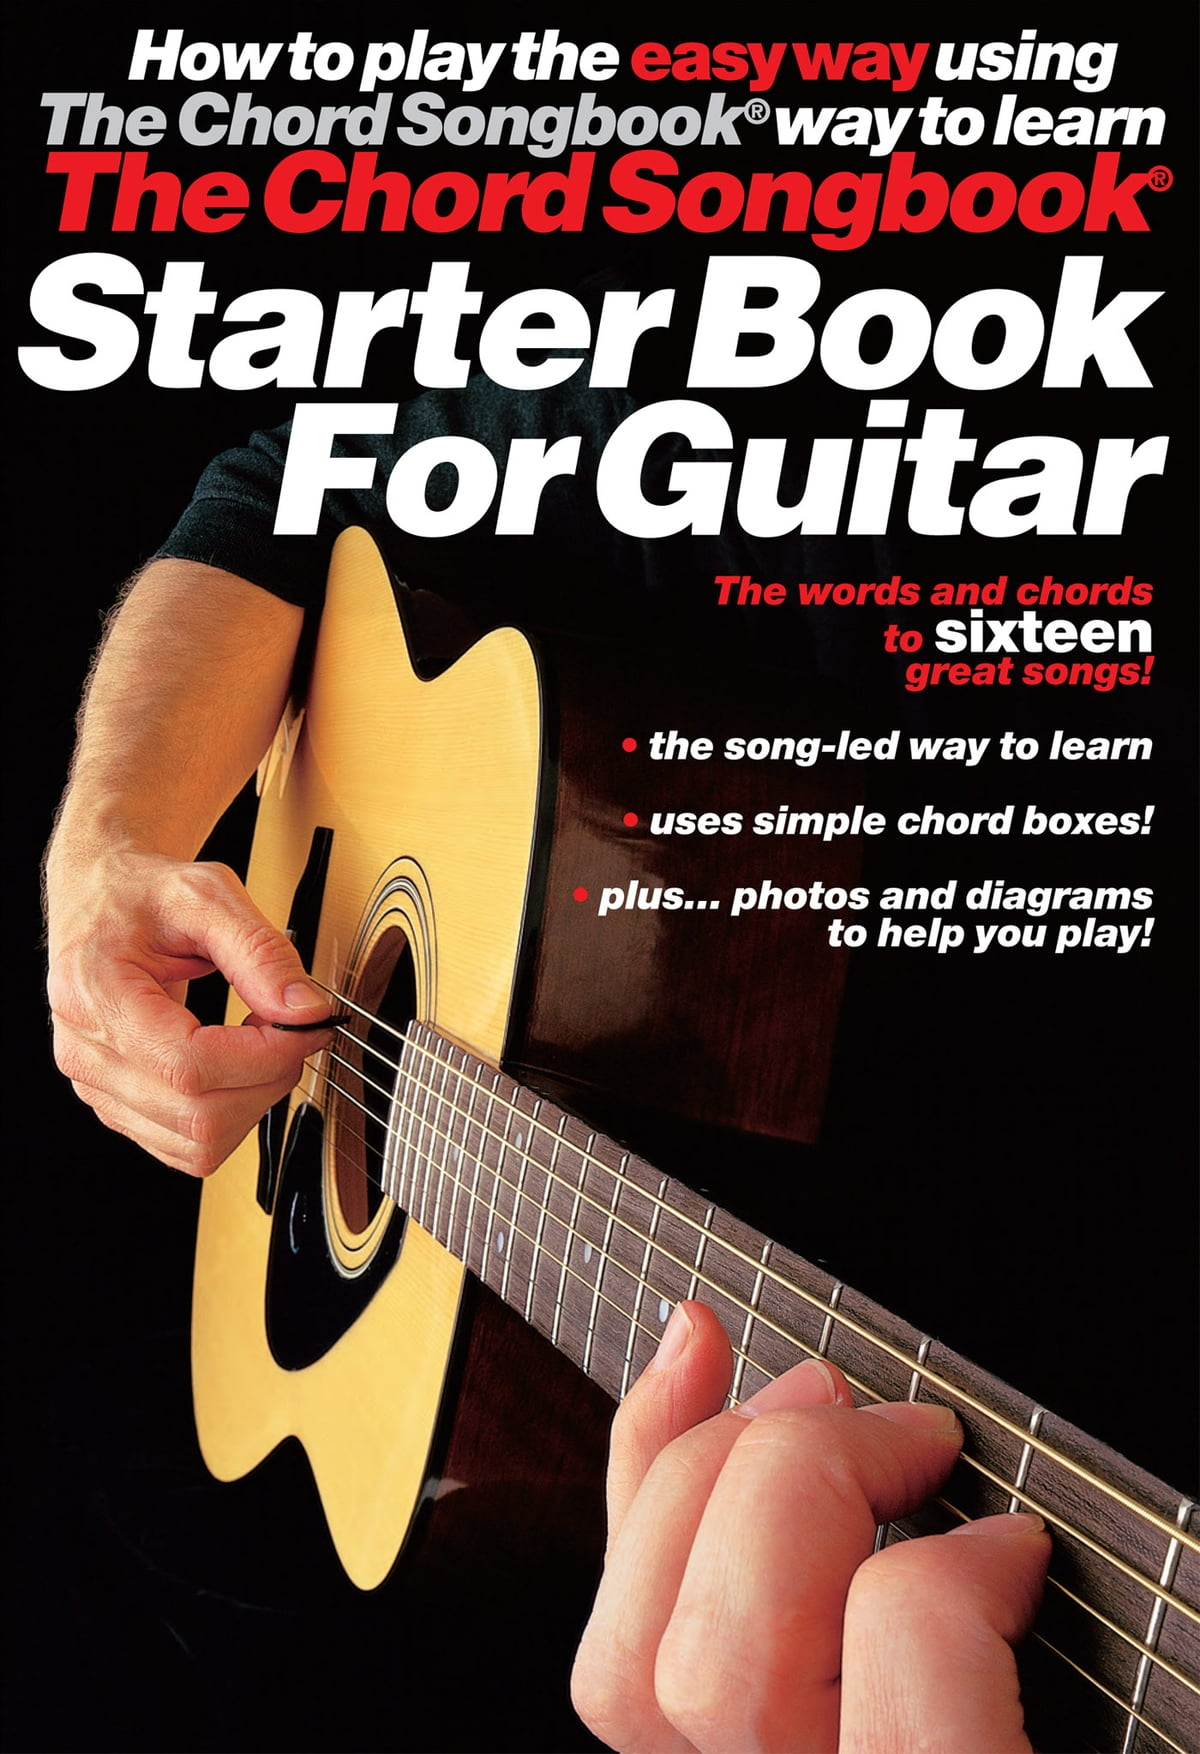 The Chord Songbook Starter Book For Guitar Ebook By Cliff Douse